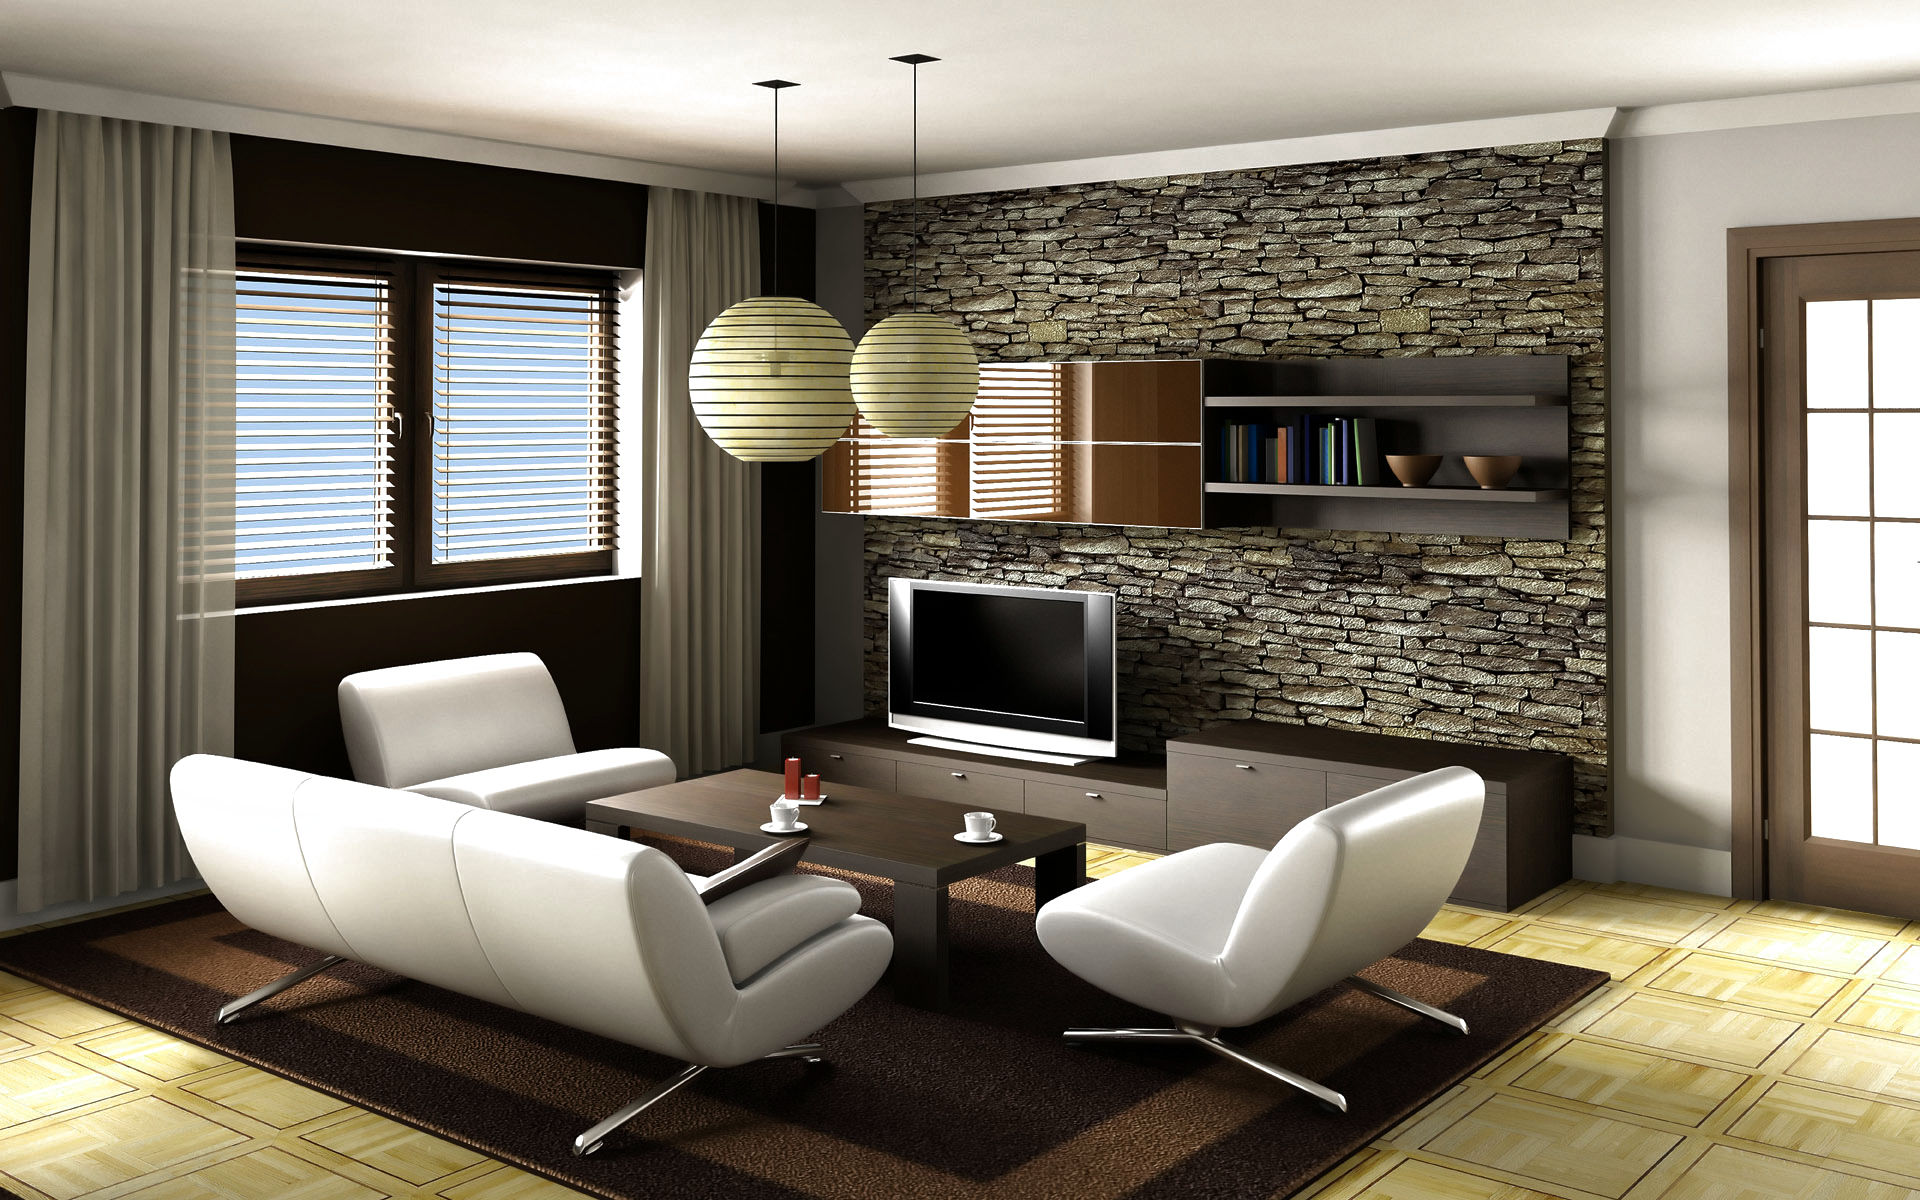 16 modern living room furniture ideas design hgnv com for Living room pics